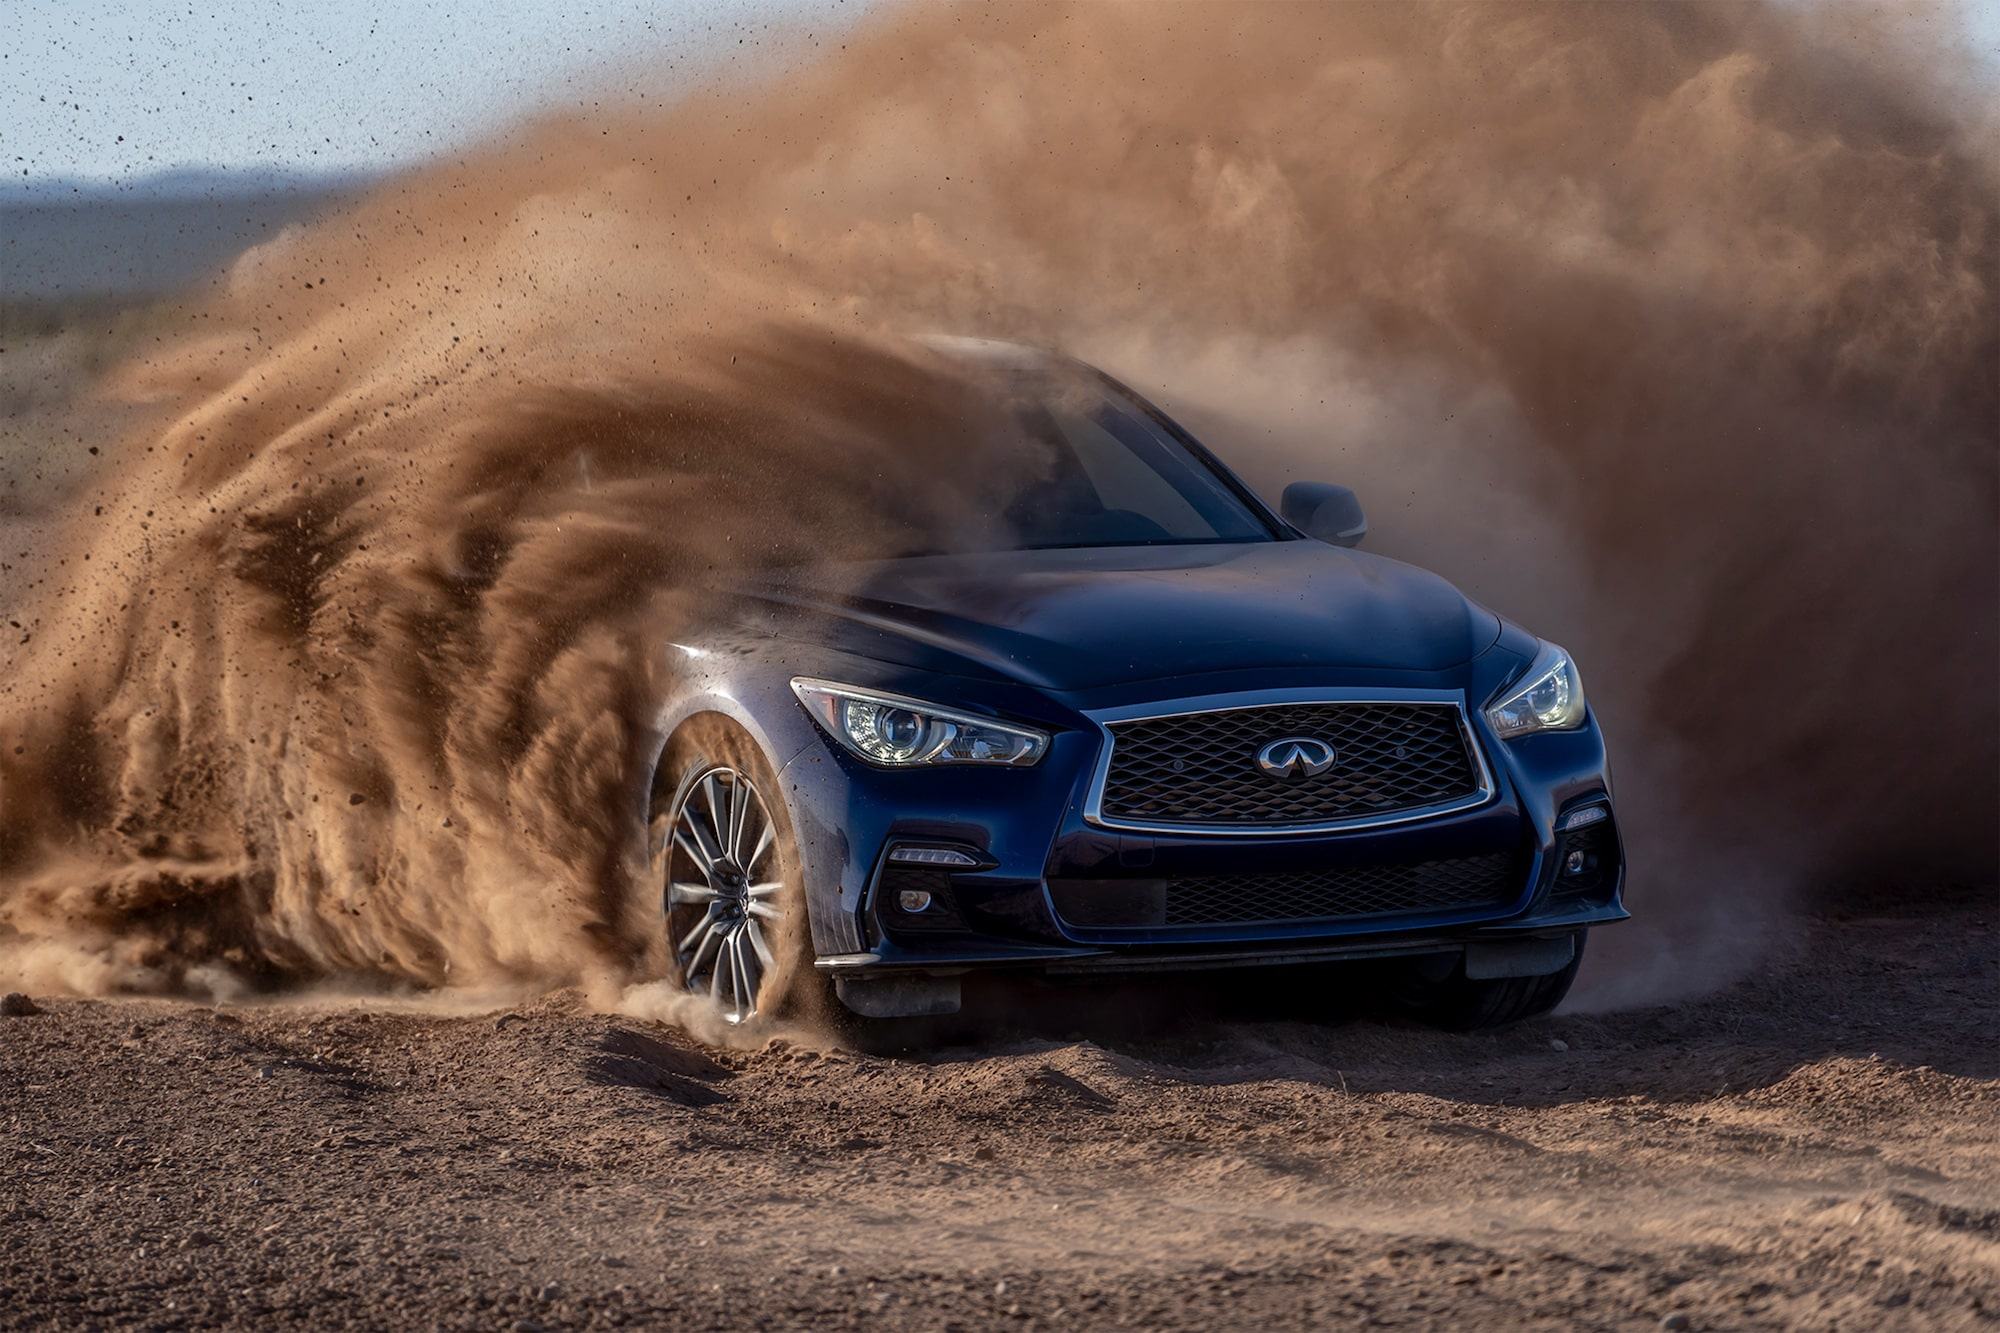 dominic fraser sony alpha 7III car turns quickly in the desert and throws up a cloud of dust